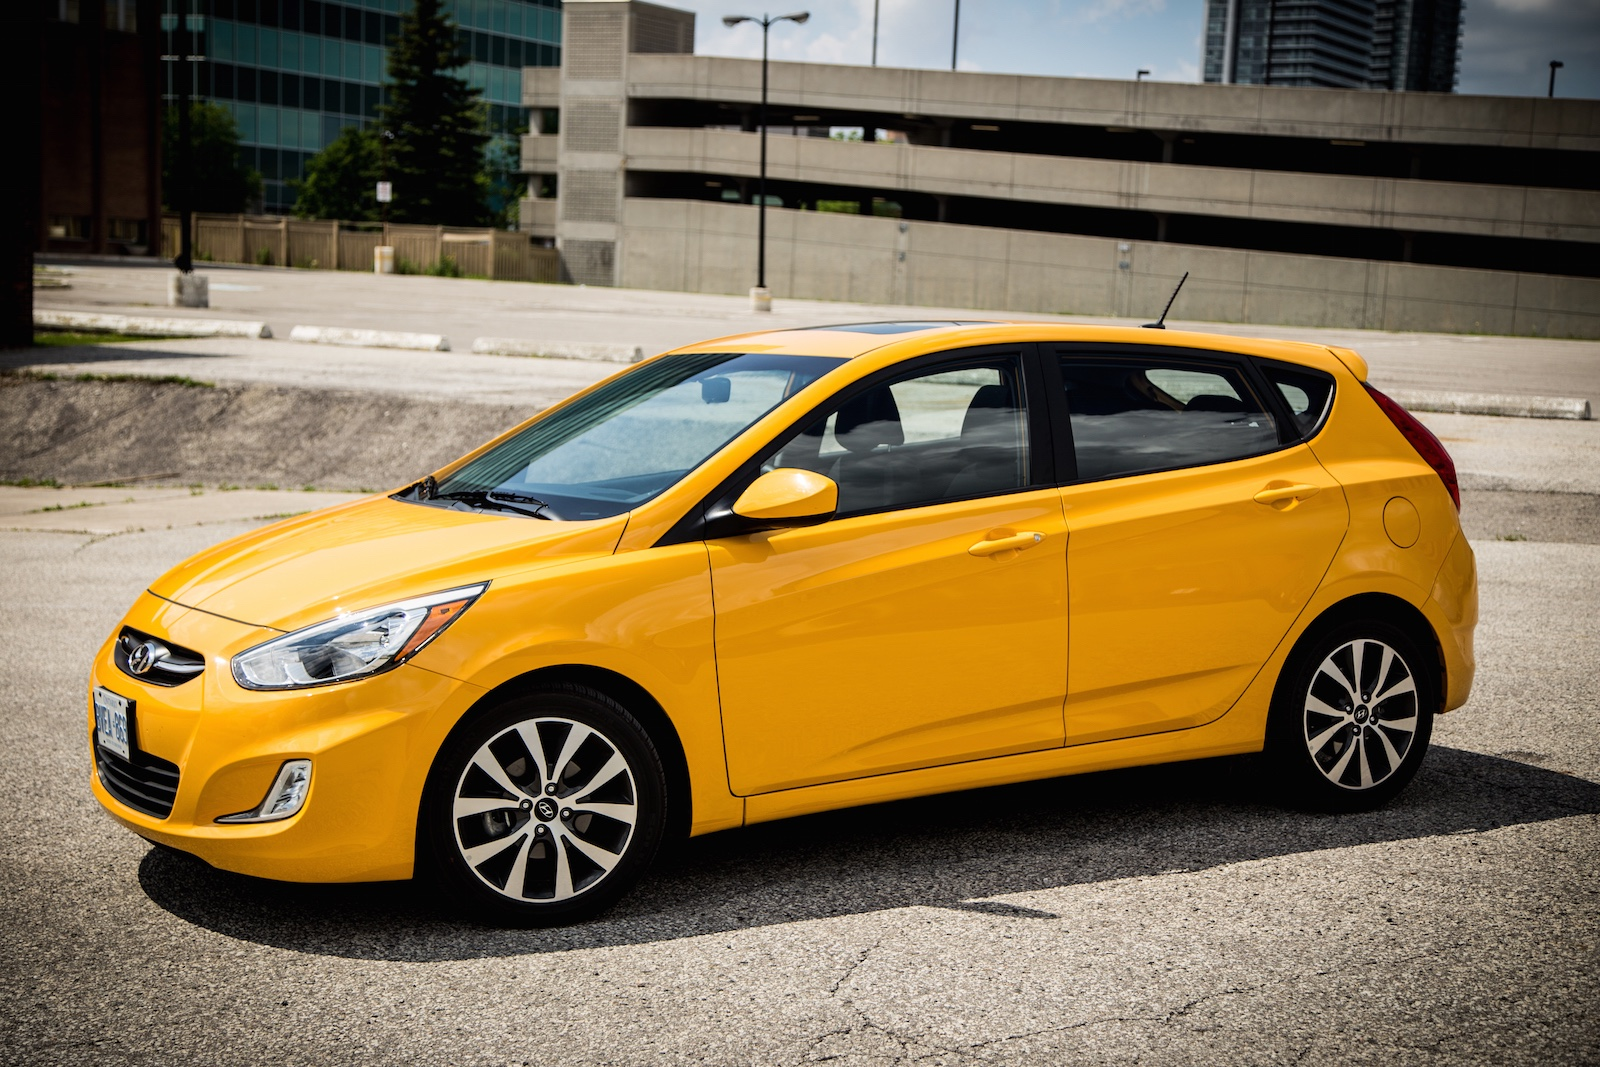 Picture of Lachlan's 2015 Hyundai Accent